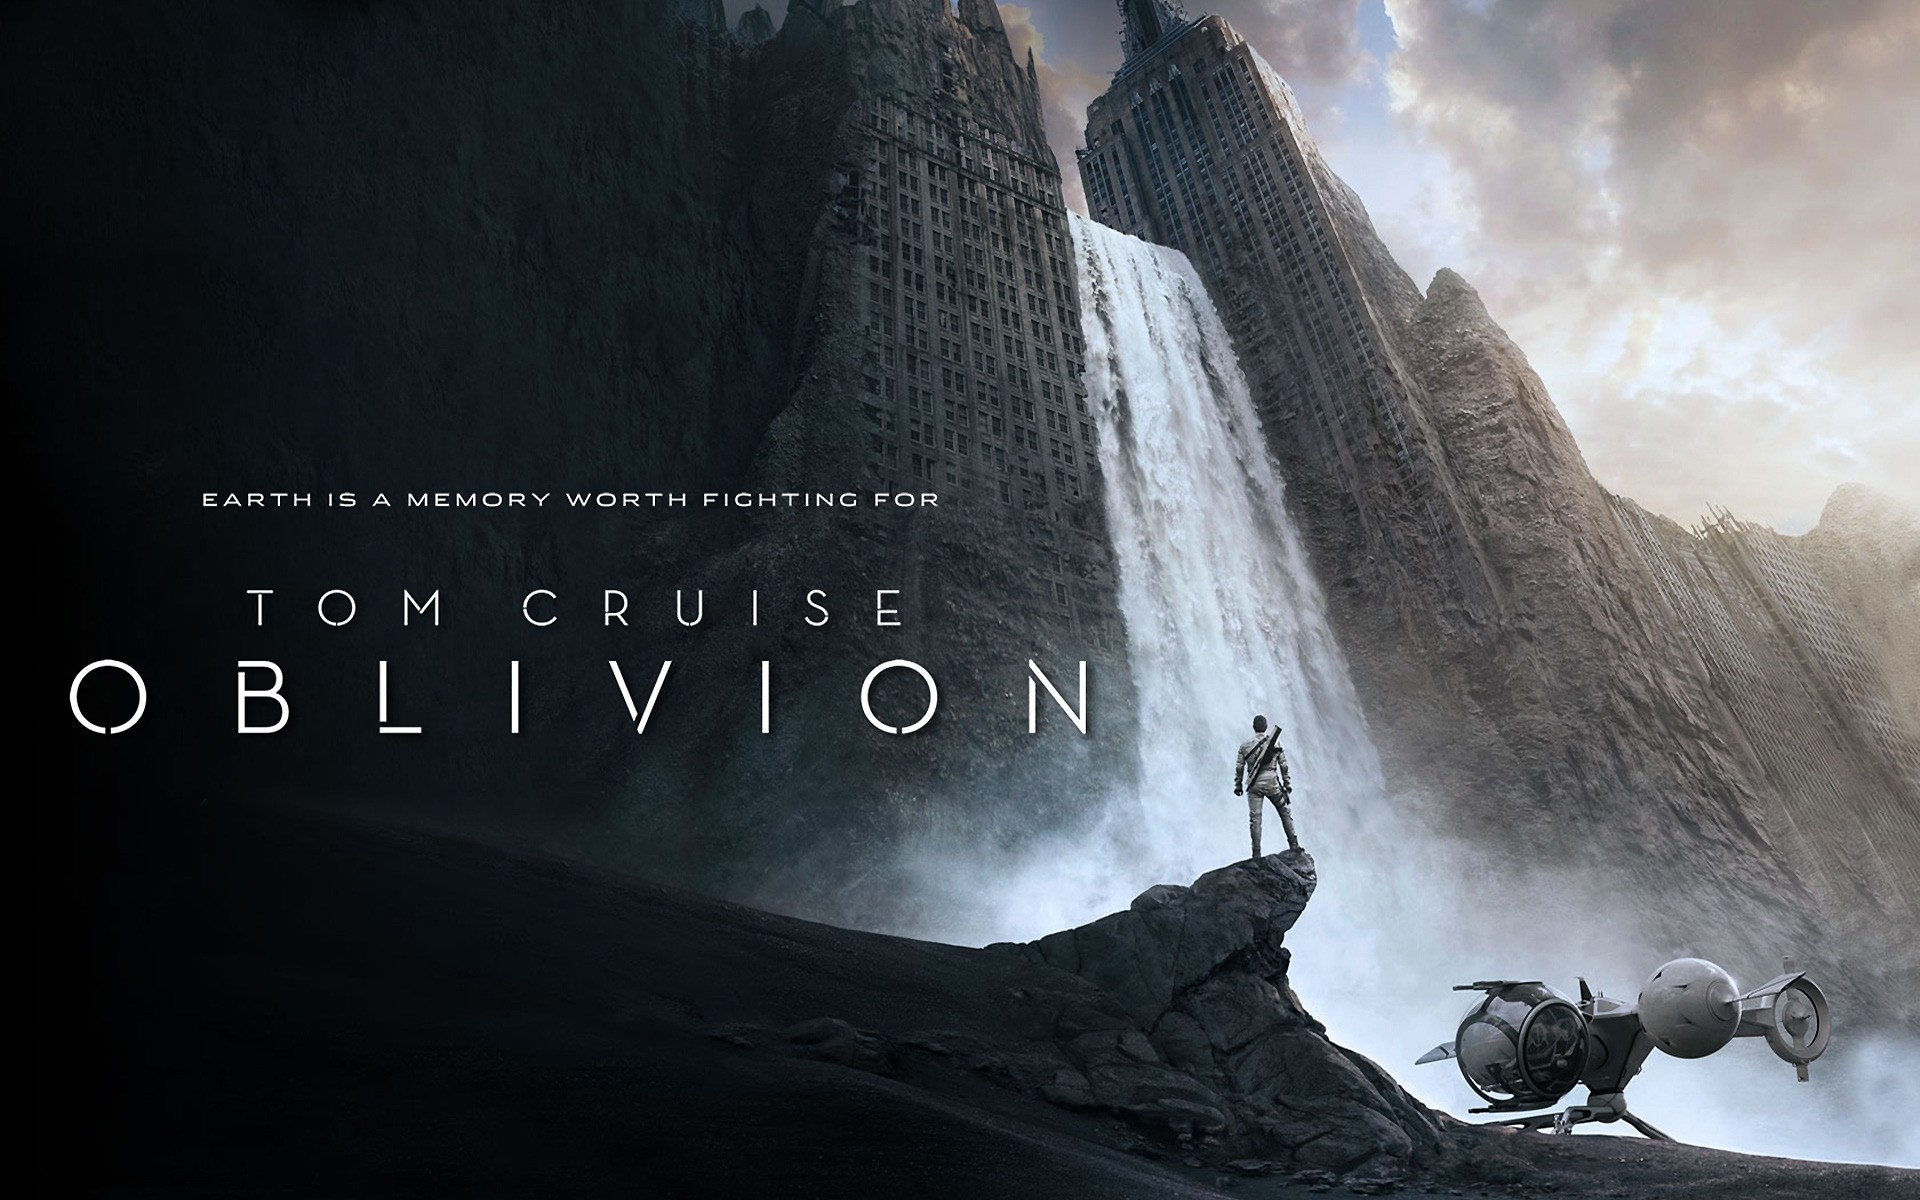 oblivion movie. iphone wallpapers for free.